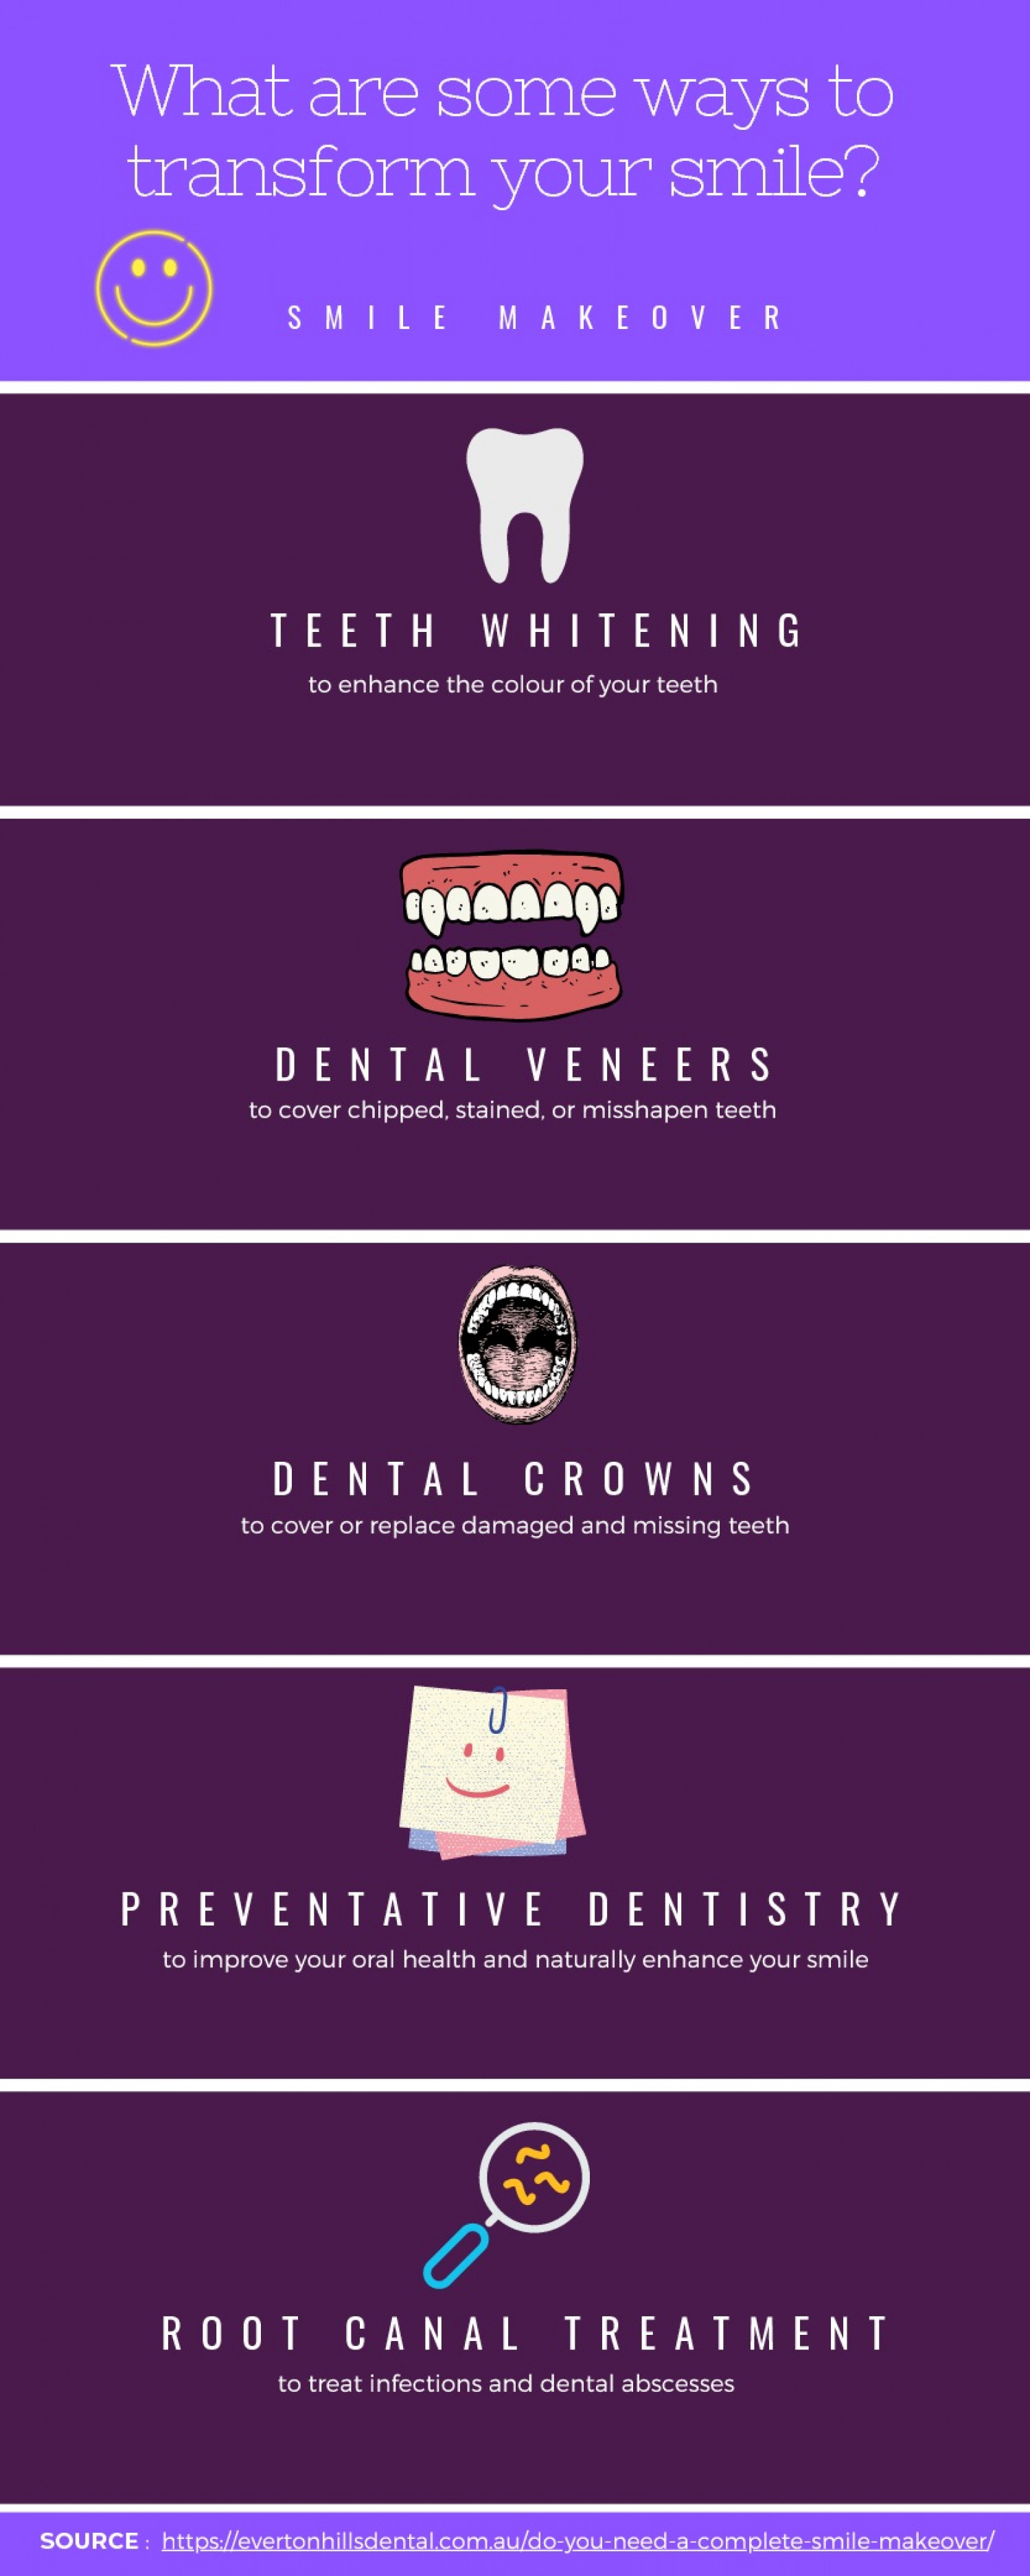 What are Some Ways to Transform Your Smile? Infographic